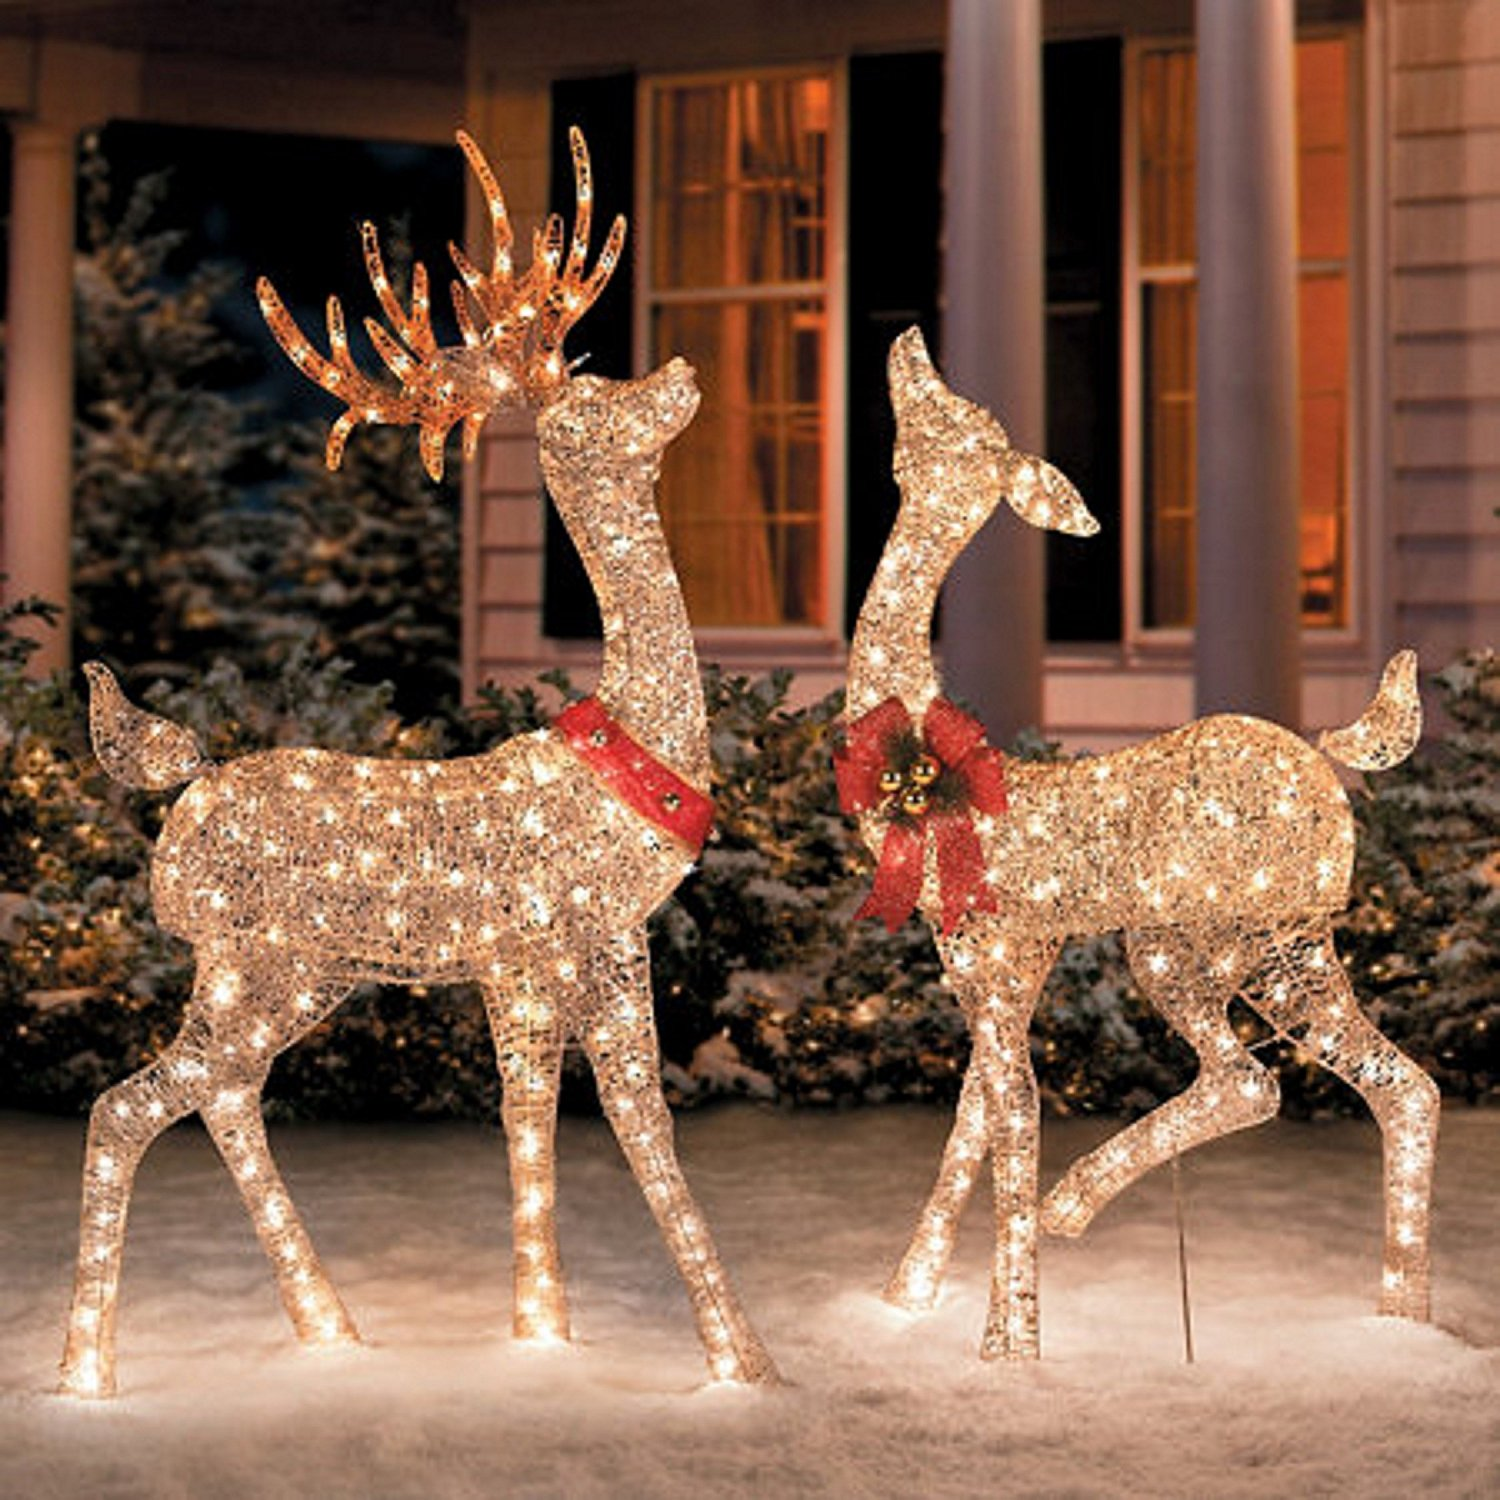 How to decorate for christmas outdoors - Christmas Outdoor Decorations Reindeer